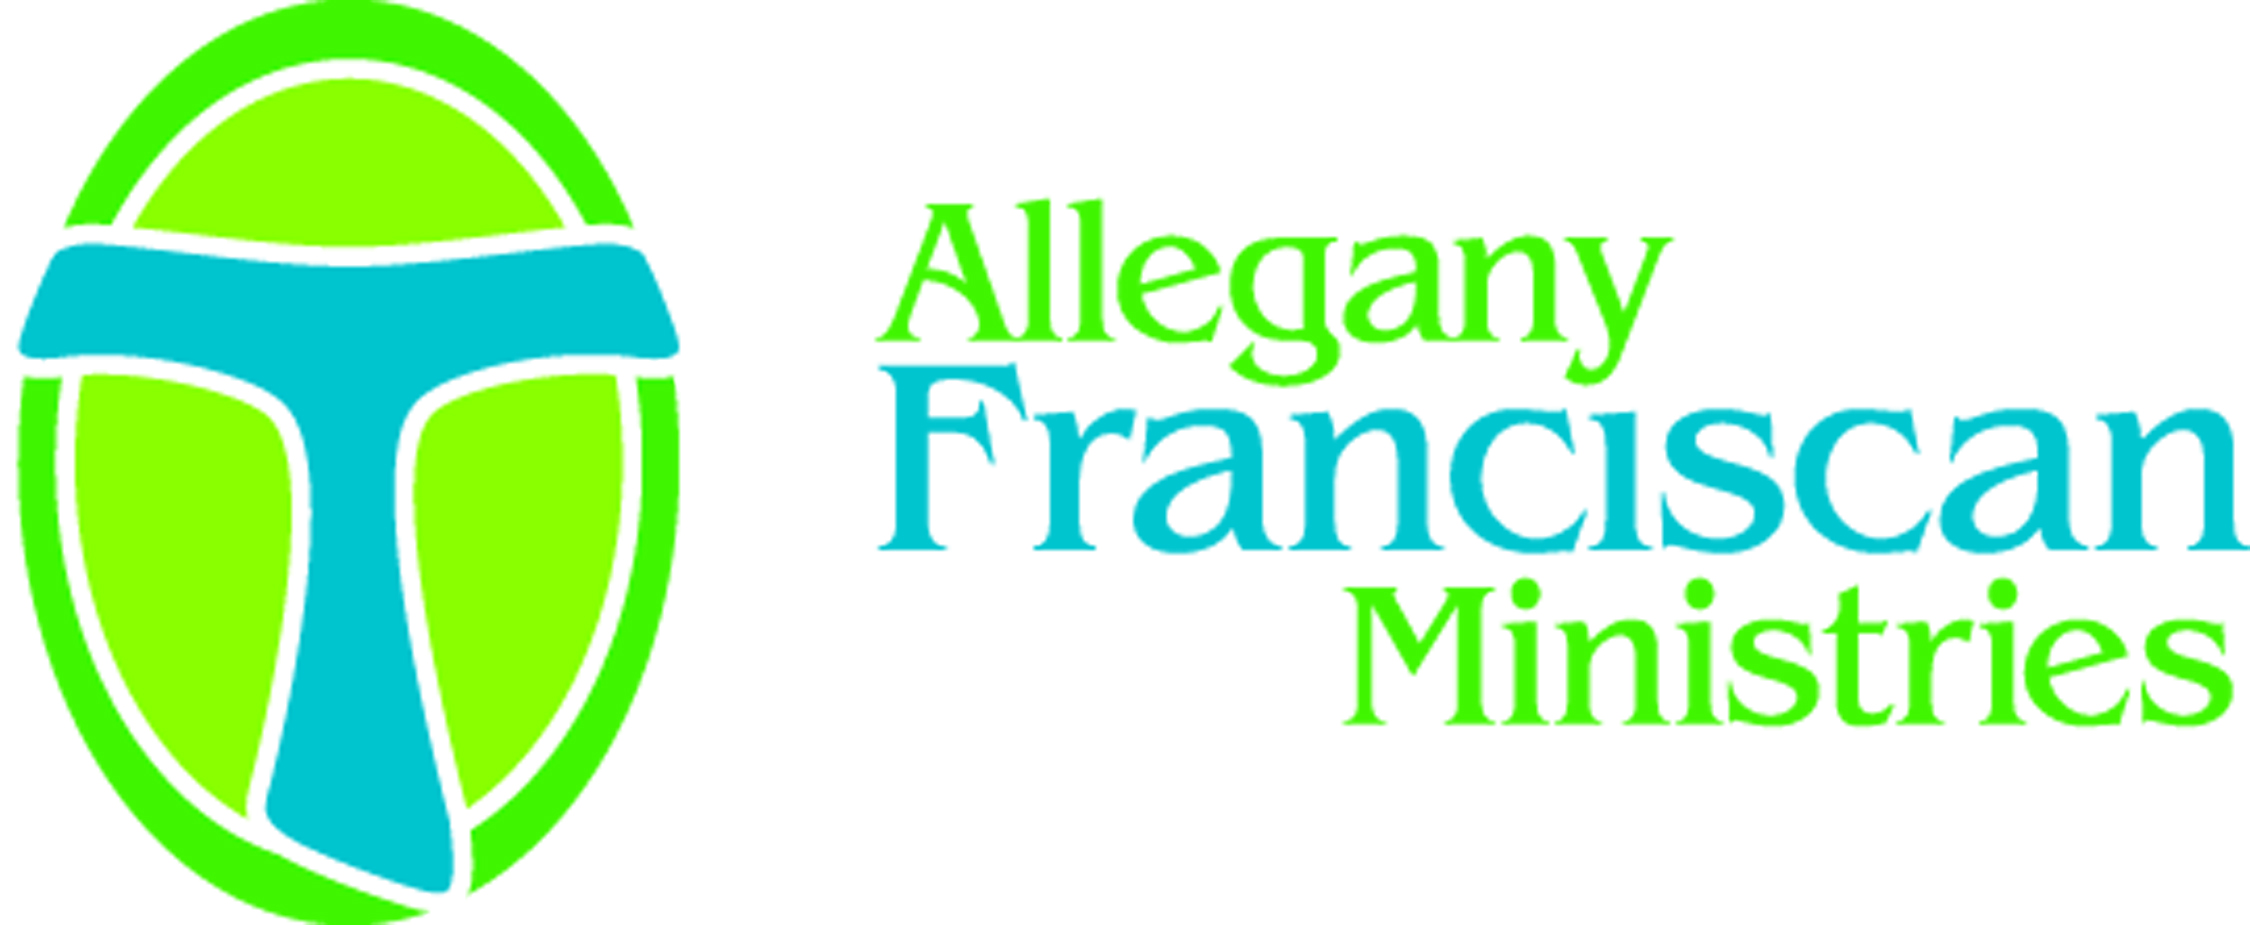 Allegany Franciscan Ministries